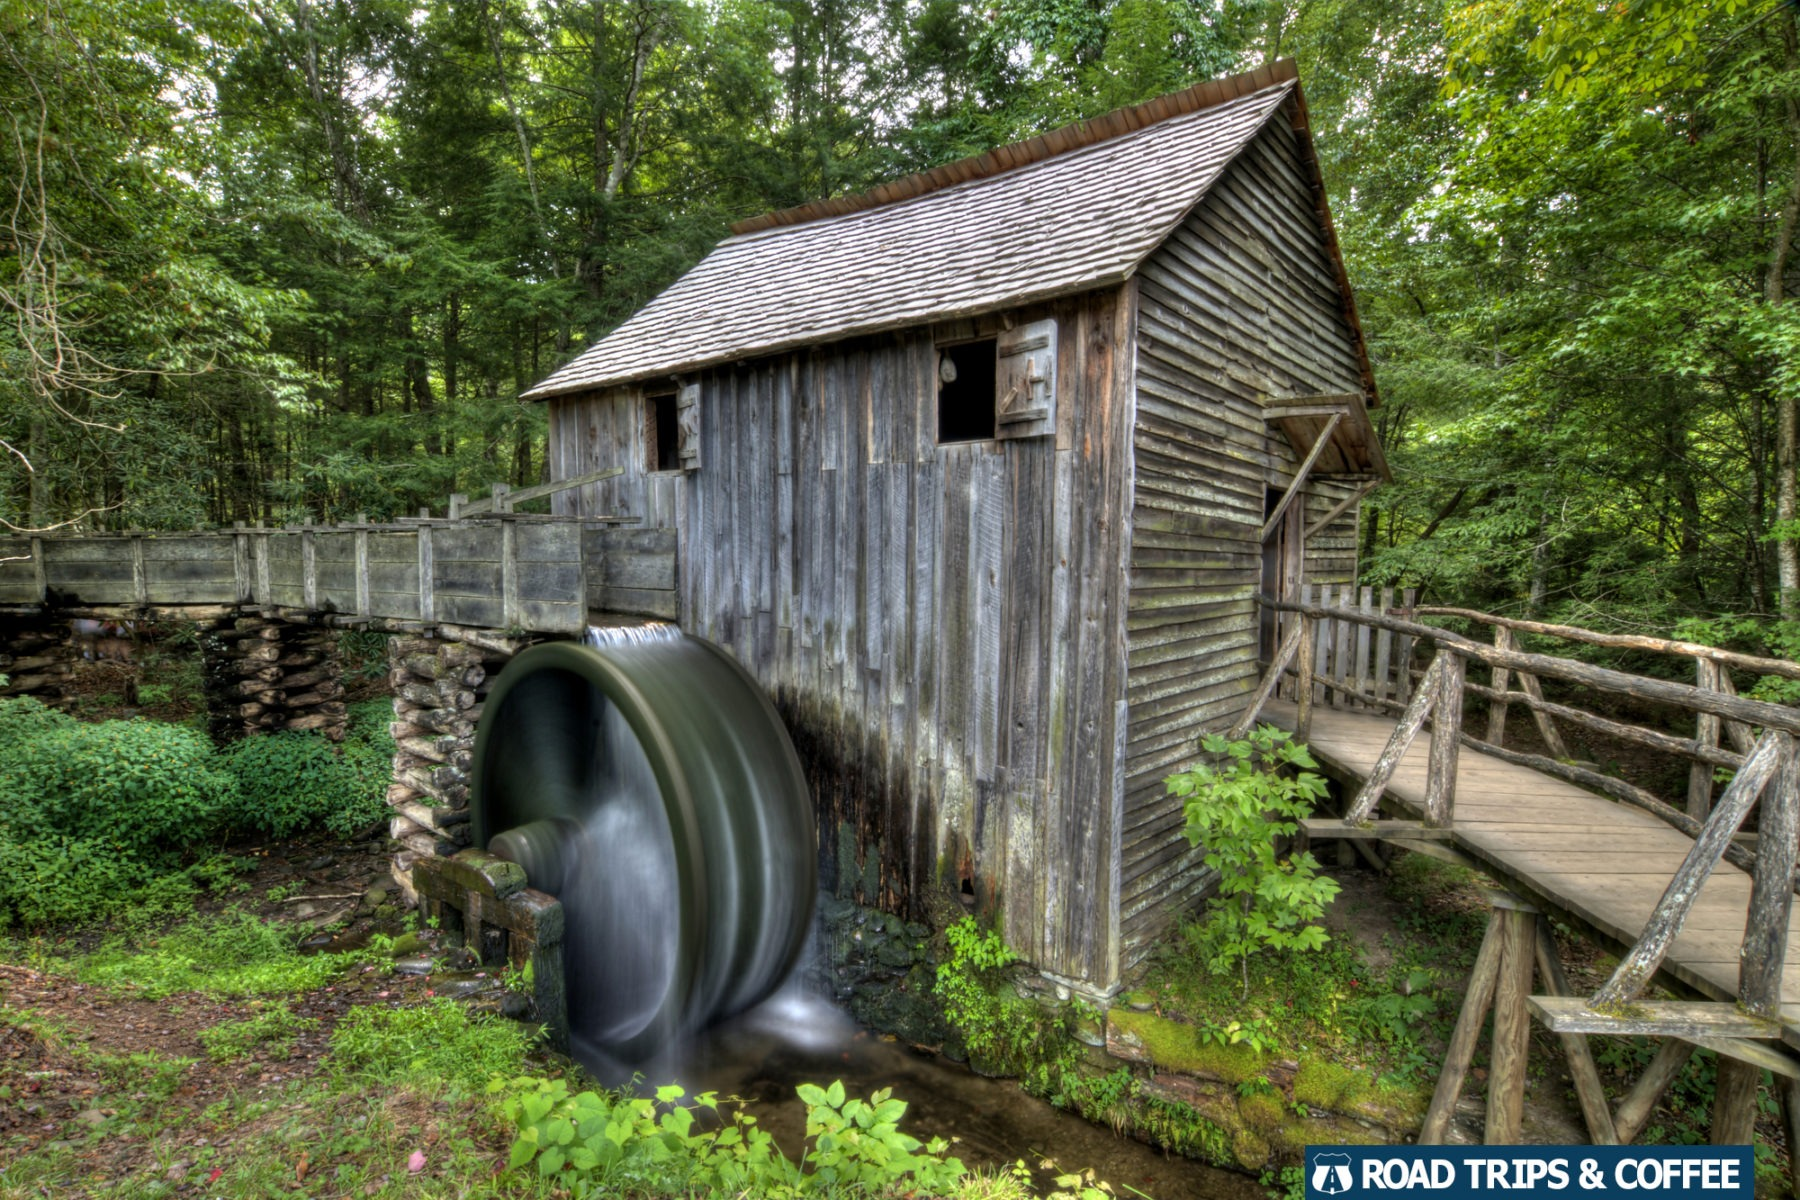 A wheel spins from water power at the John Cable Grist Mill in Cades Cove in the Great Smoky Mountains National Park